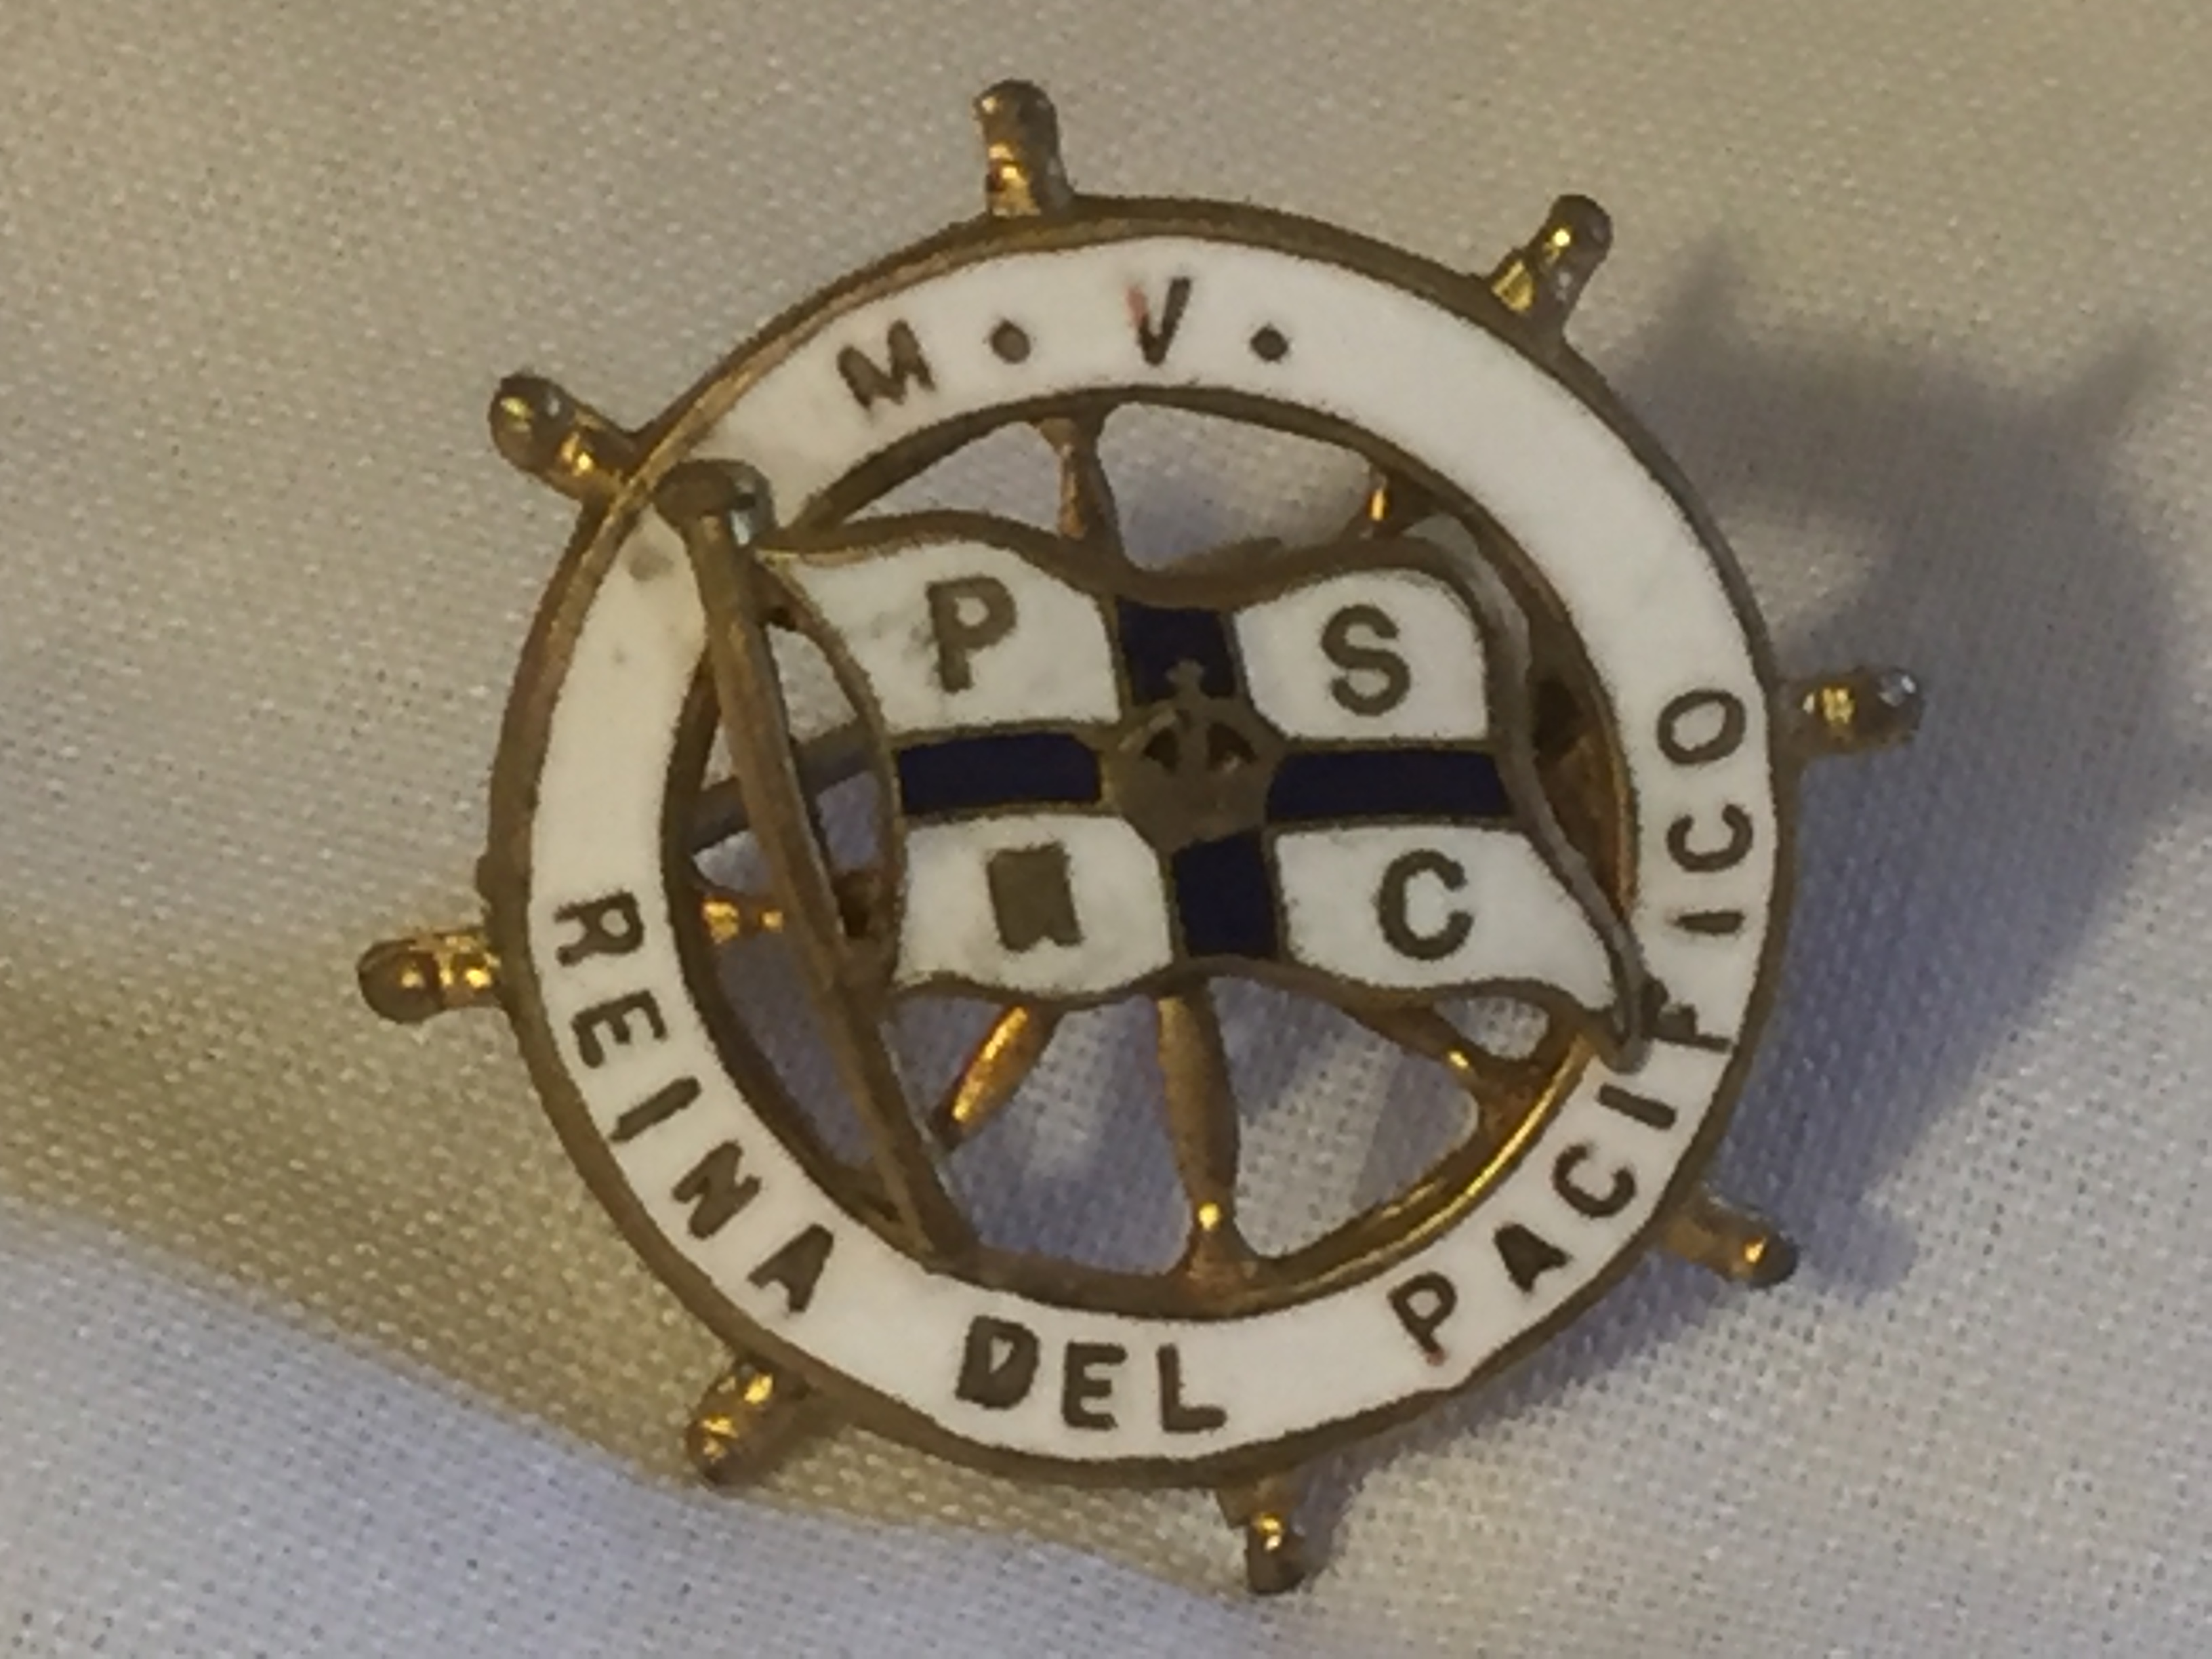 EARLY LAPEL PIN BADGE FROM THE PACIFIC STEAM NAVIGATION COMPANY VESSEL THE REINA DEL PACIFICO